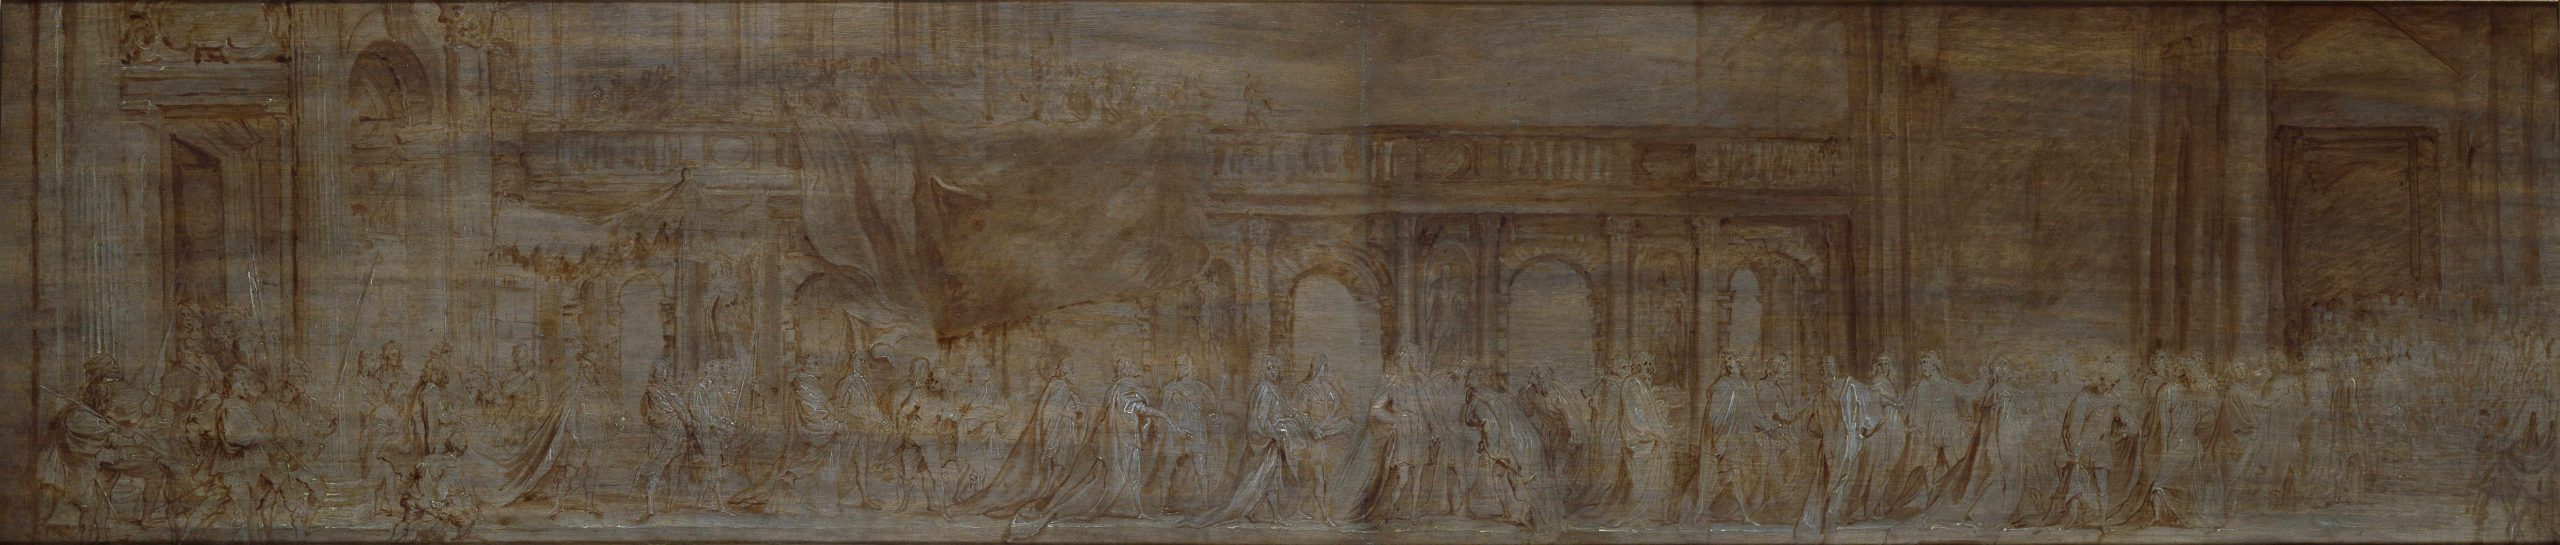 Charles I and the Knights of the Garter in Procession